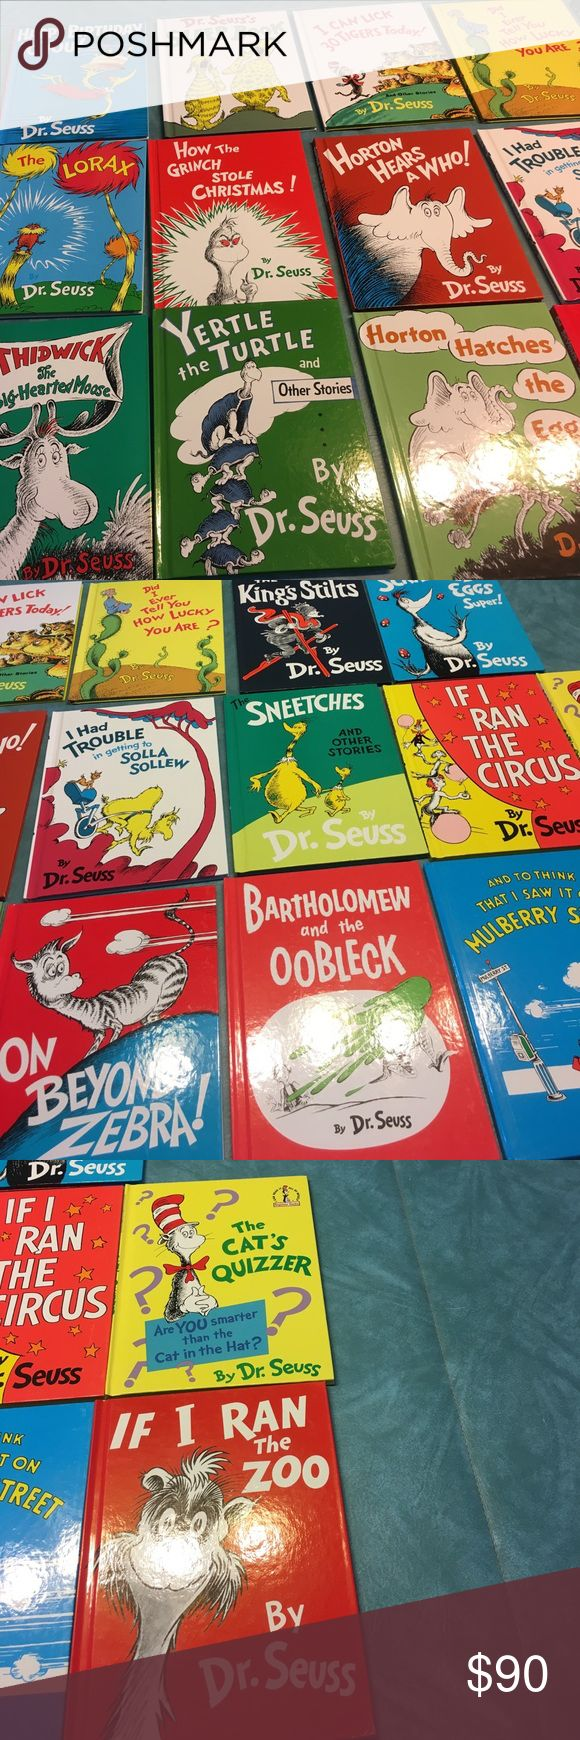 Dr Seuss book set of 20 Wonderful Dr Seuss set! Some classics along with other fun ones! Brand new books! Books measure 8.5in x 11. Other